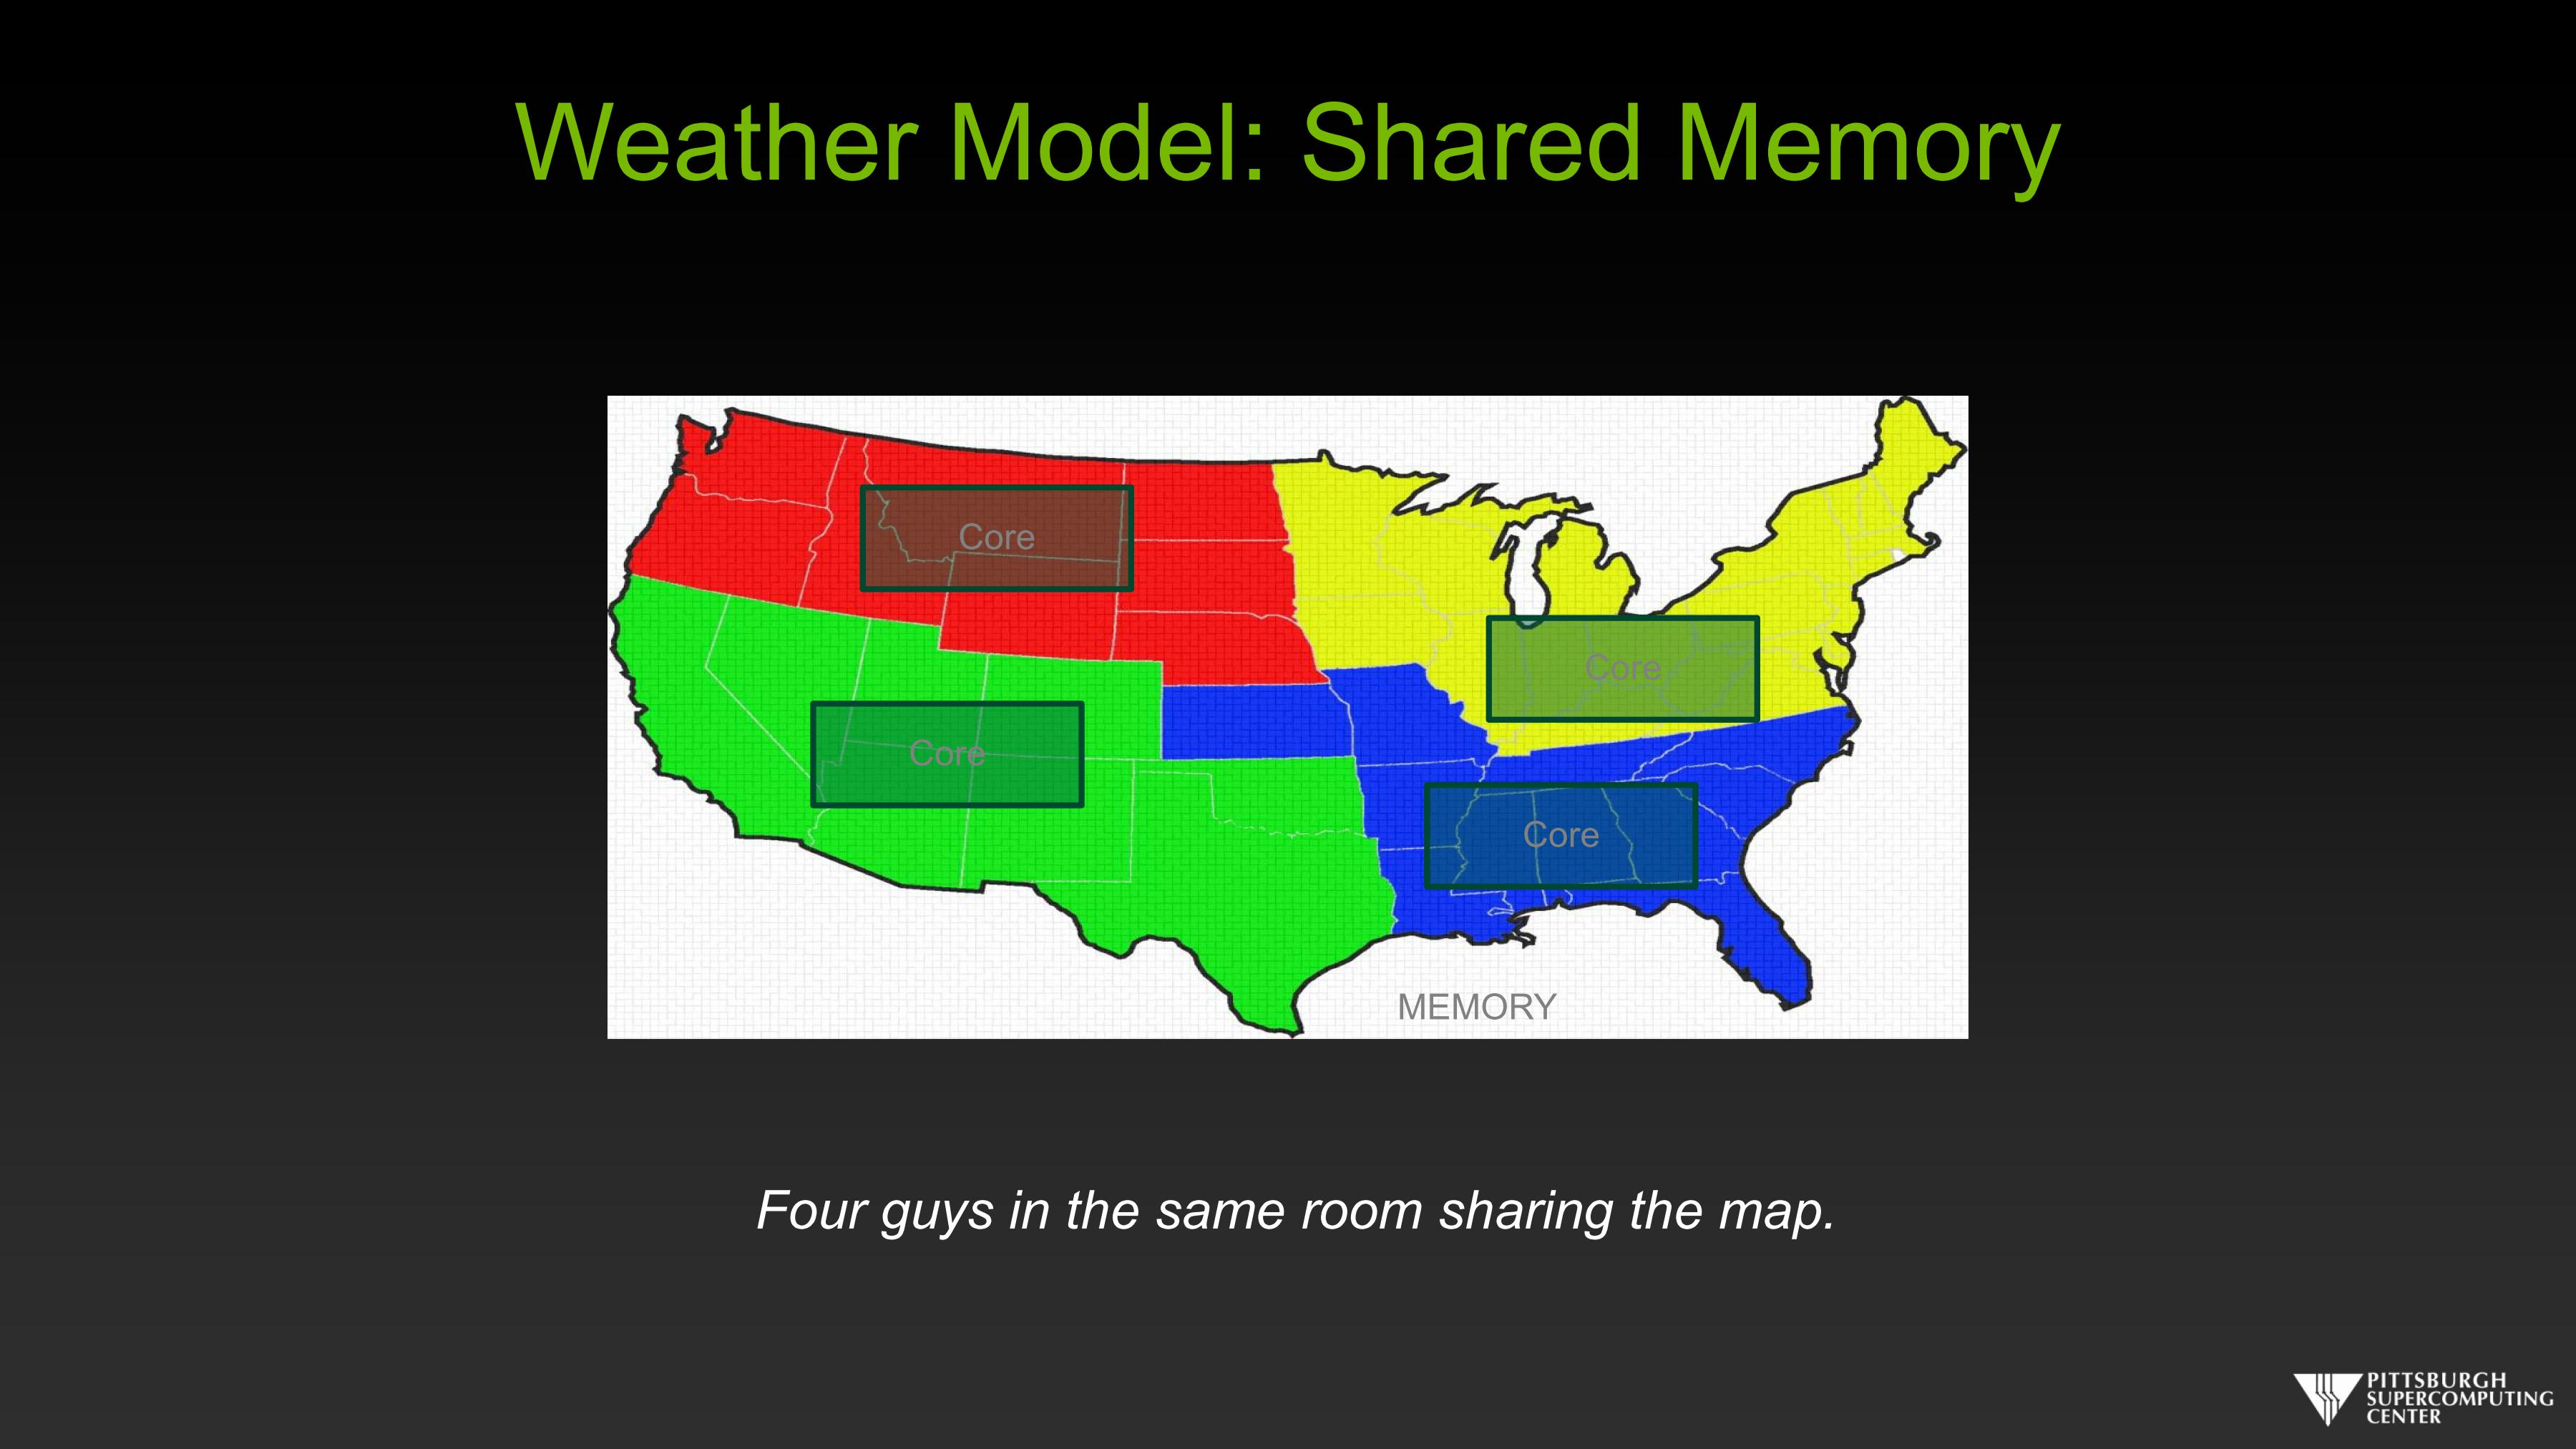 Weather Model: Shared Memory